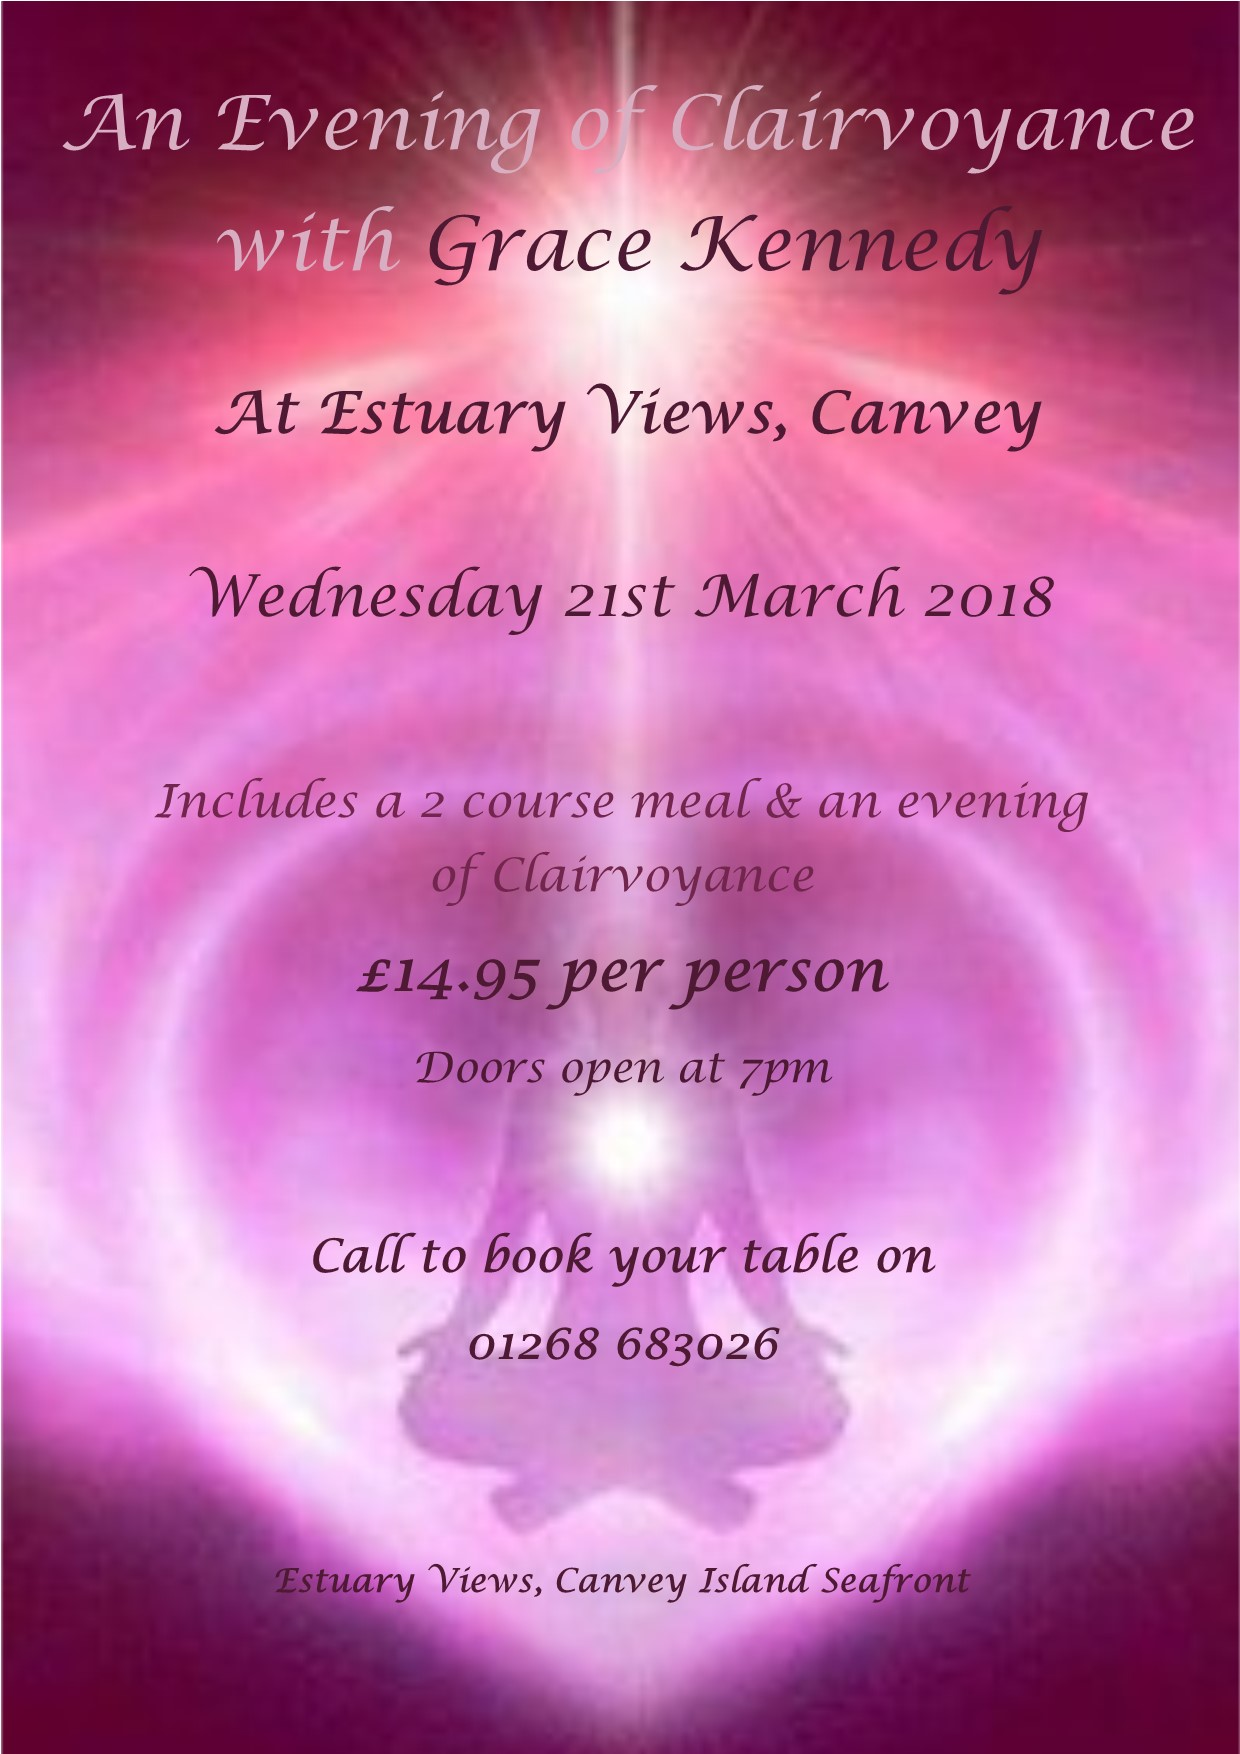 An Evening of Clairvoyance with Grace Kennedy